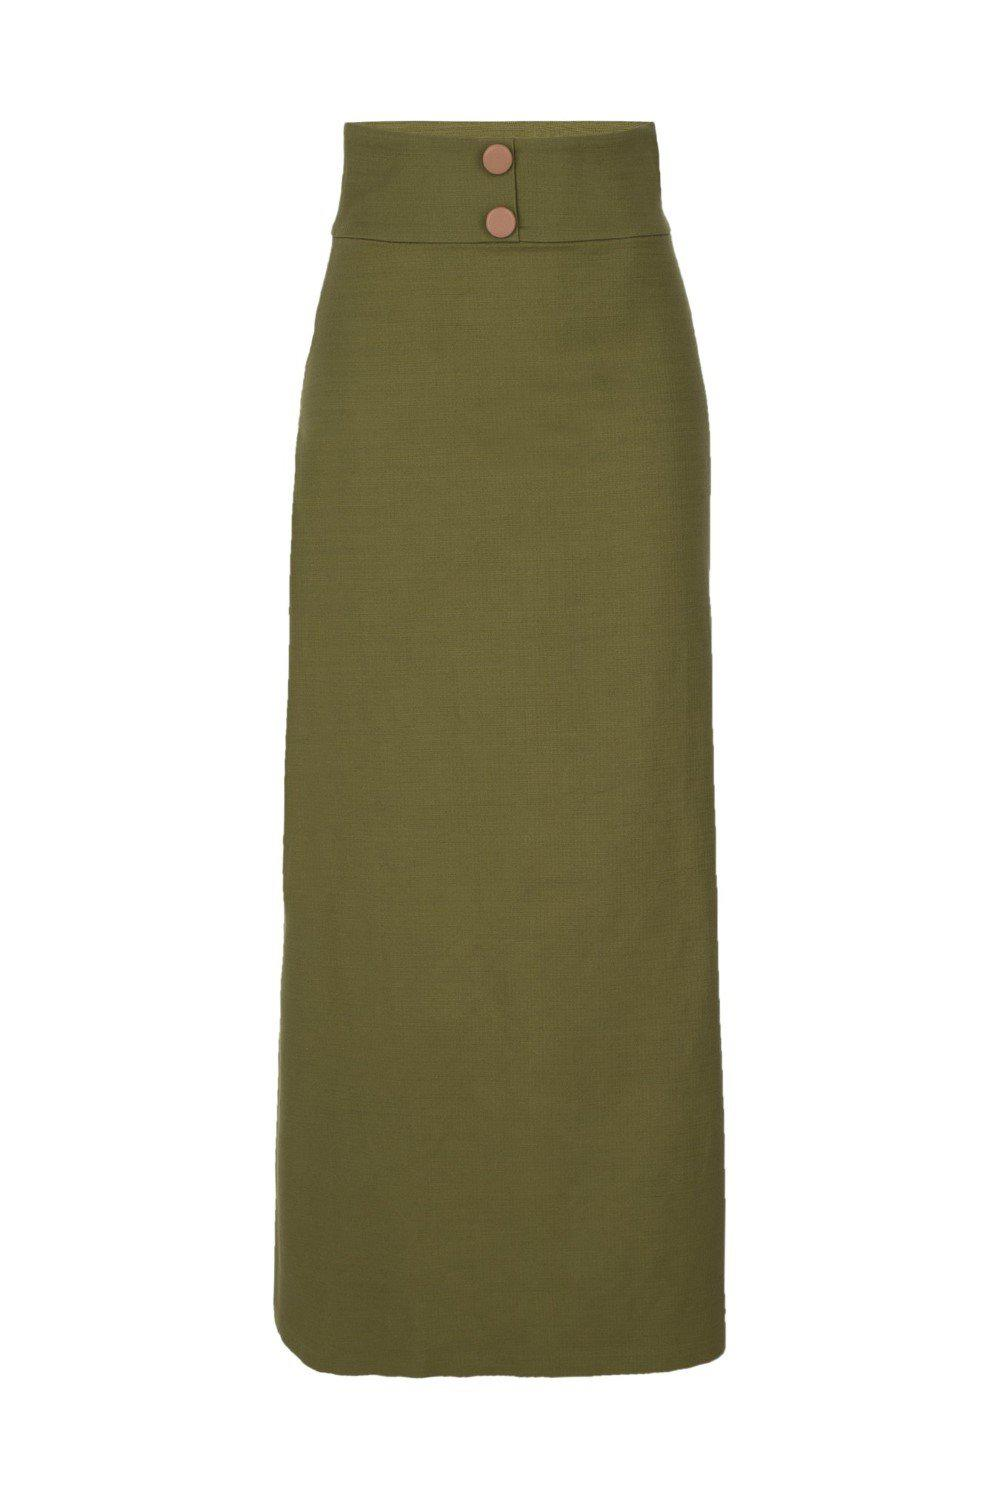 Safari Solid Long Skirt with Buttons 3